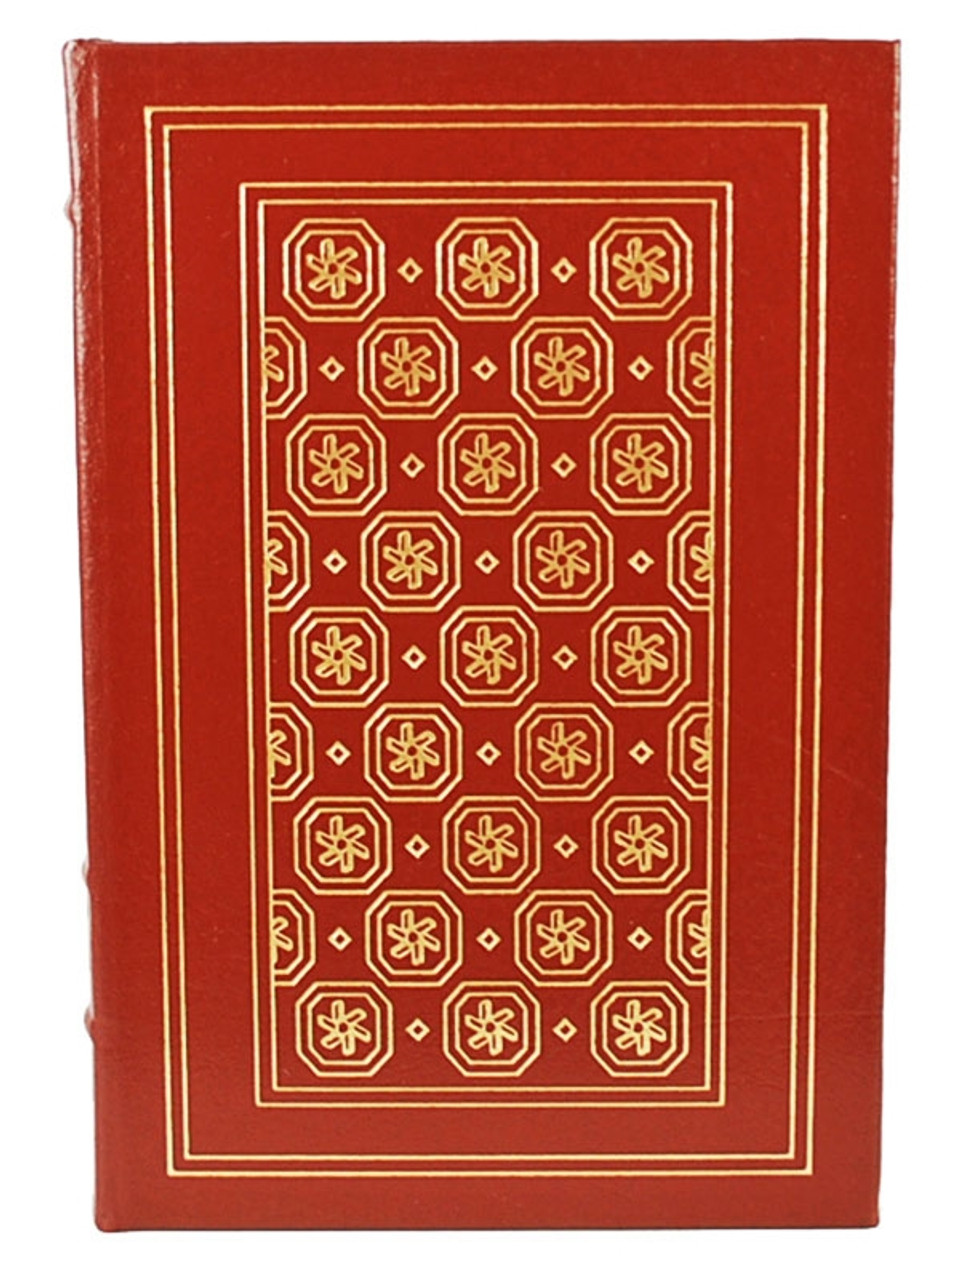 """Easton Press, Thomas S. Kuhn """"The Structure of Scientific Revolutions"""" Leather Bound Collector's Edition"""